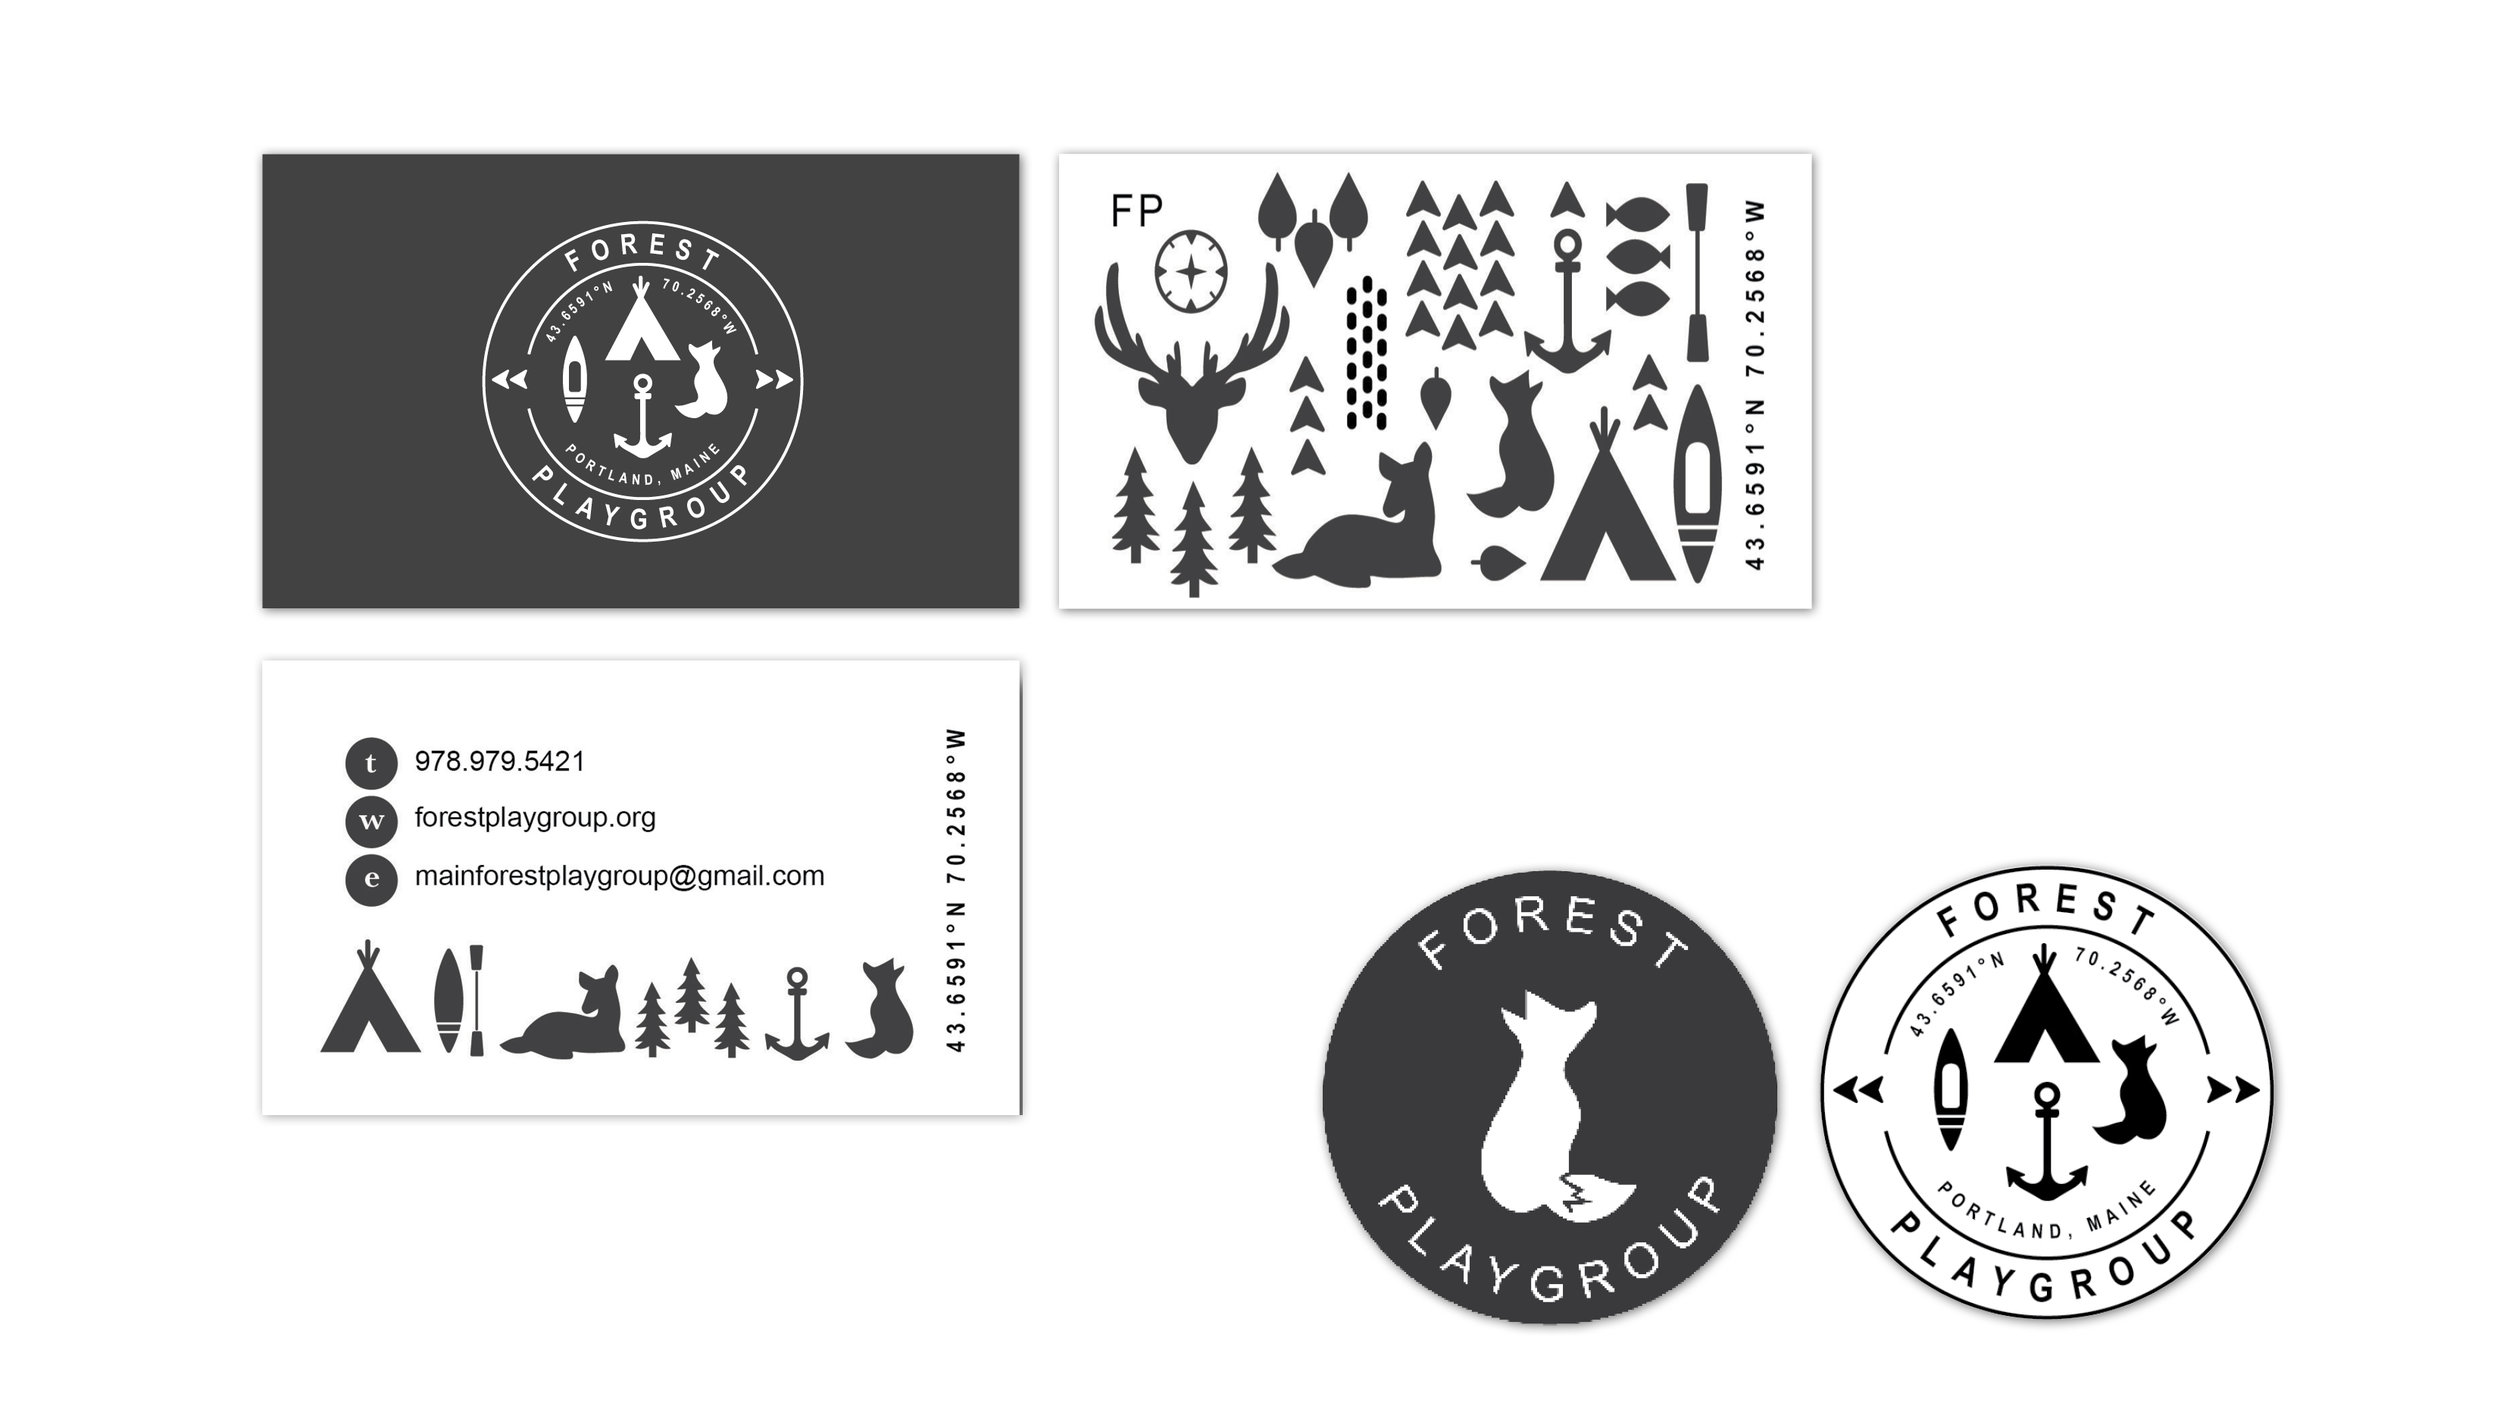 Stephanie Wencl created collateral for Forest Playgroup. These graphic design projects consists of Business Cards, stickers, and promotional cards